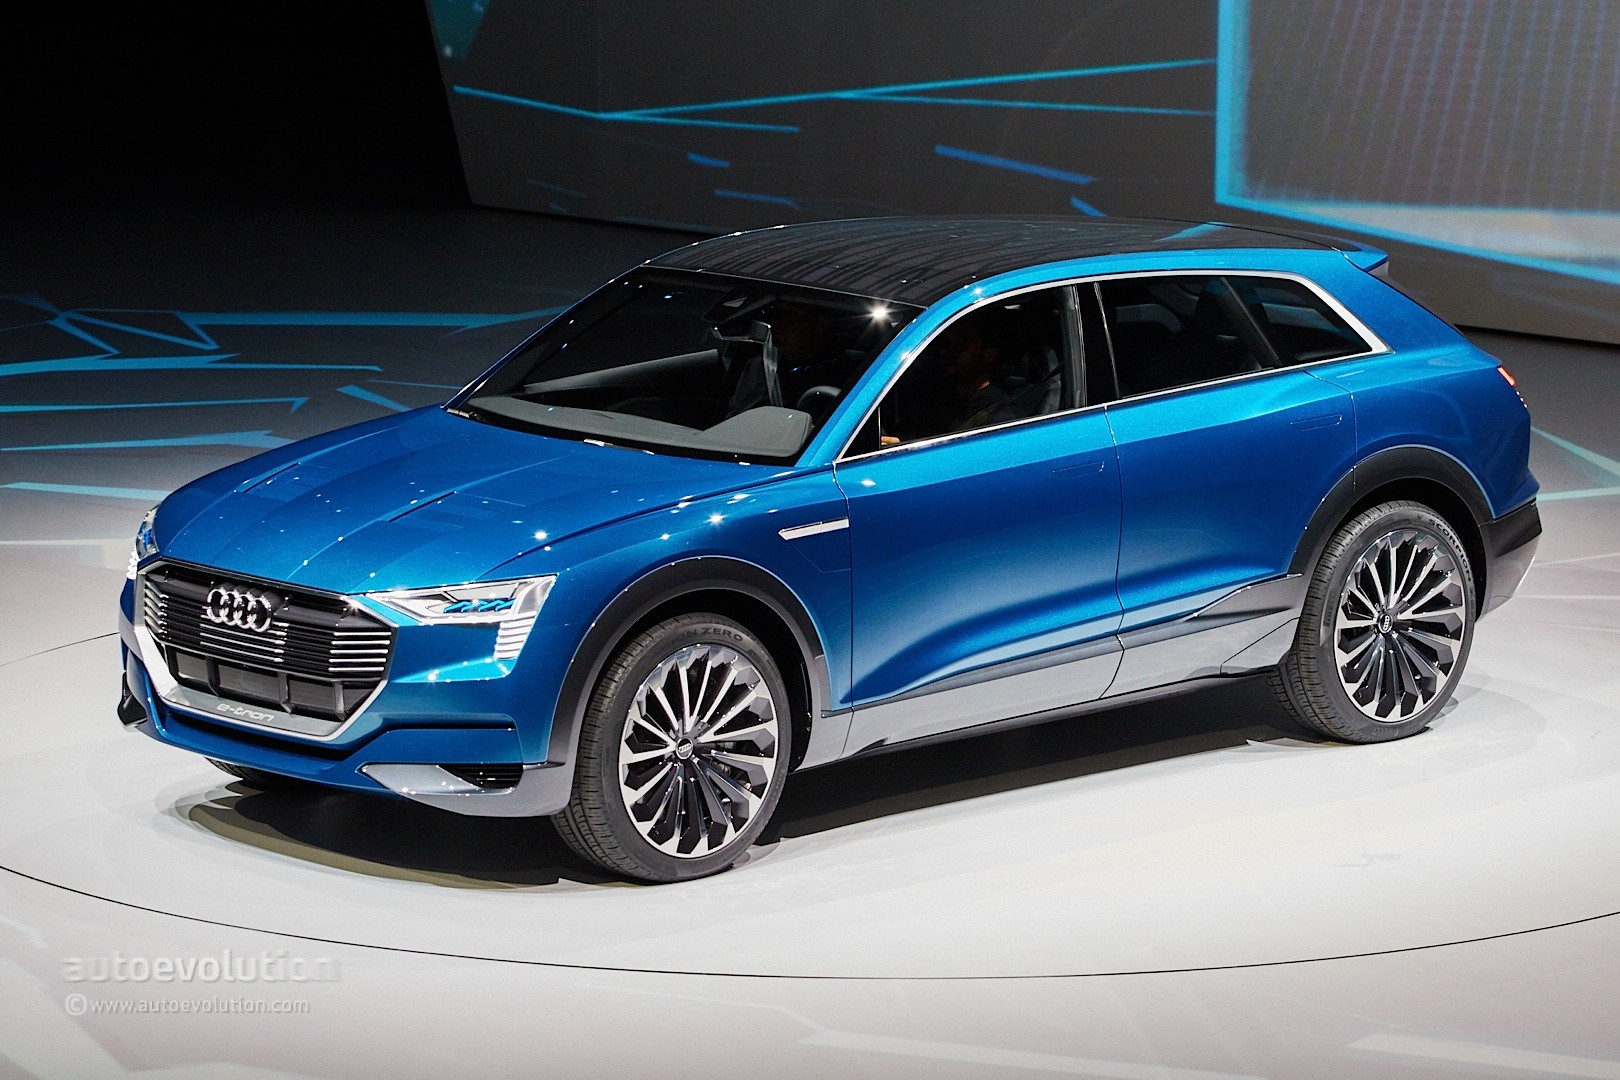 2018 audi electric suv.  audi audi etron quattro concept live photos for 2018 audi electric suv 2